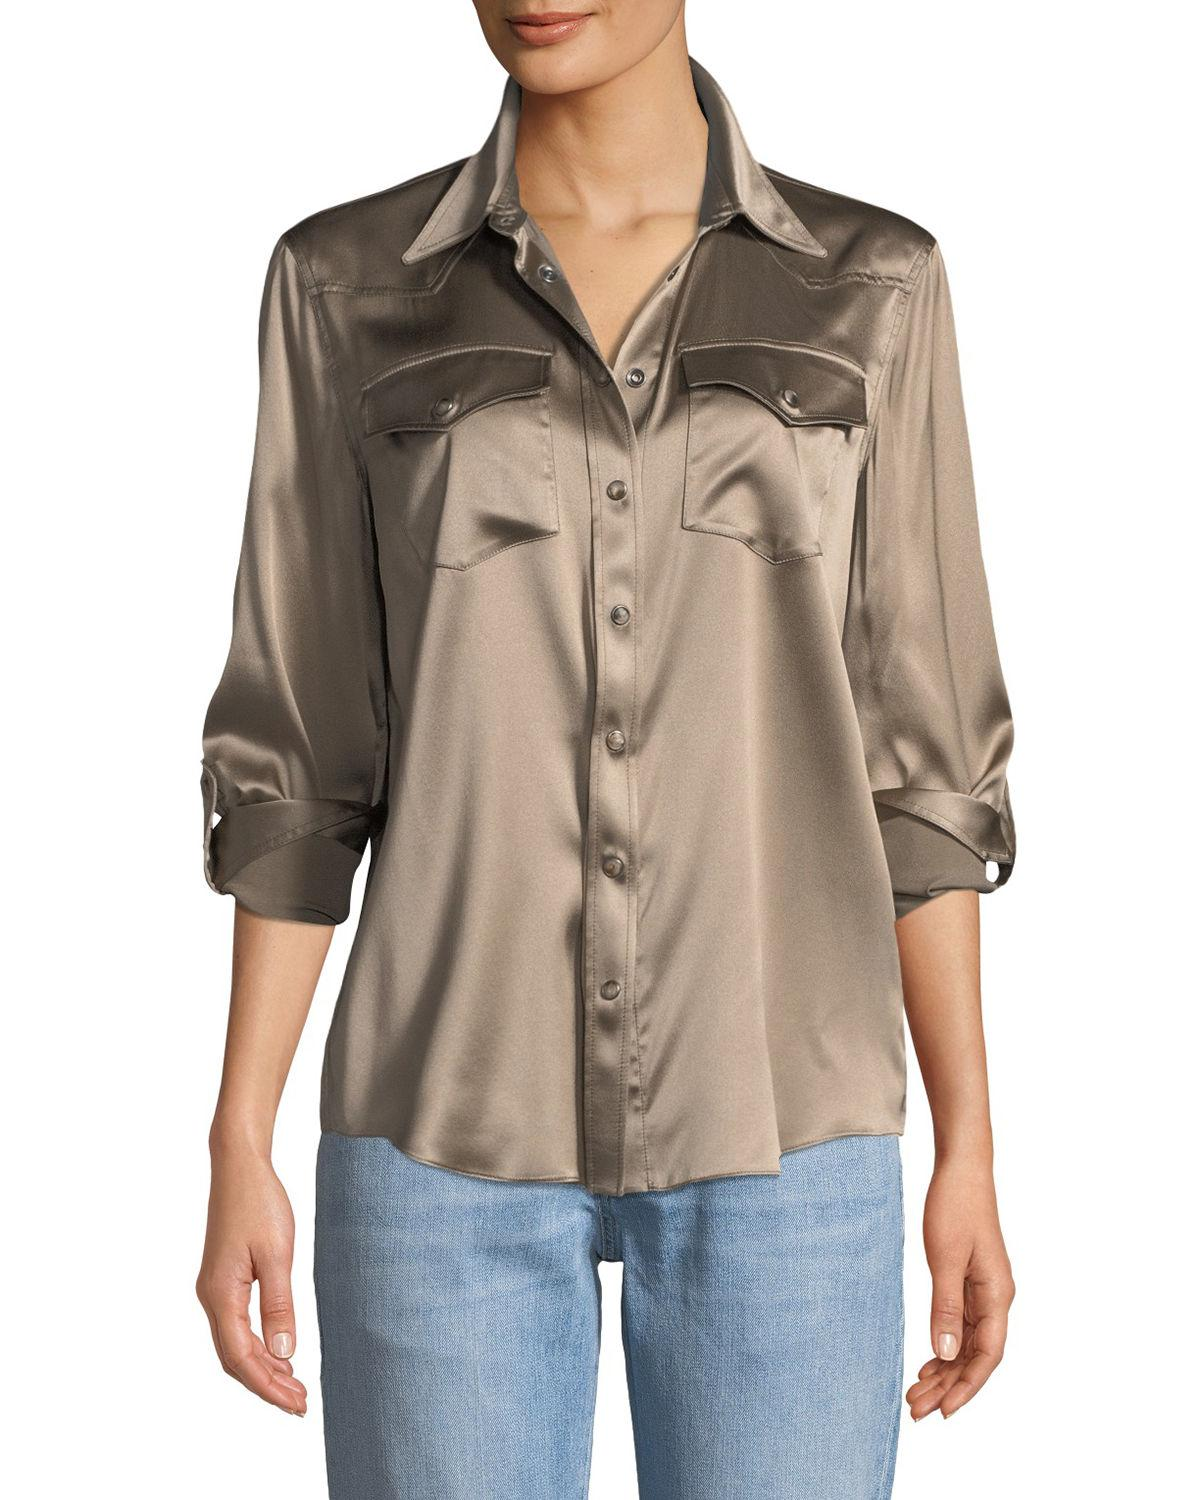 92dcf184 Western Snap Button Long Sleeve Shirts | Top Mode Depot